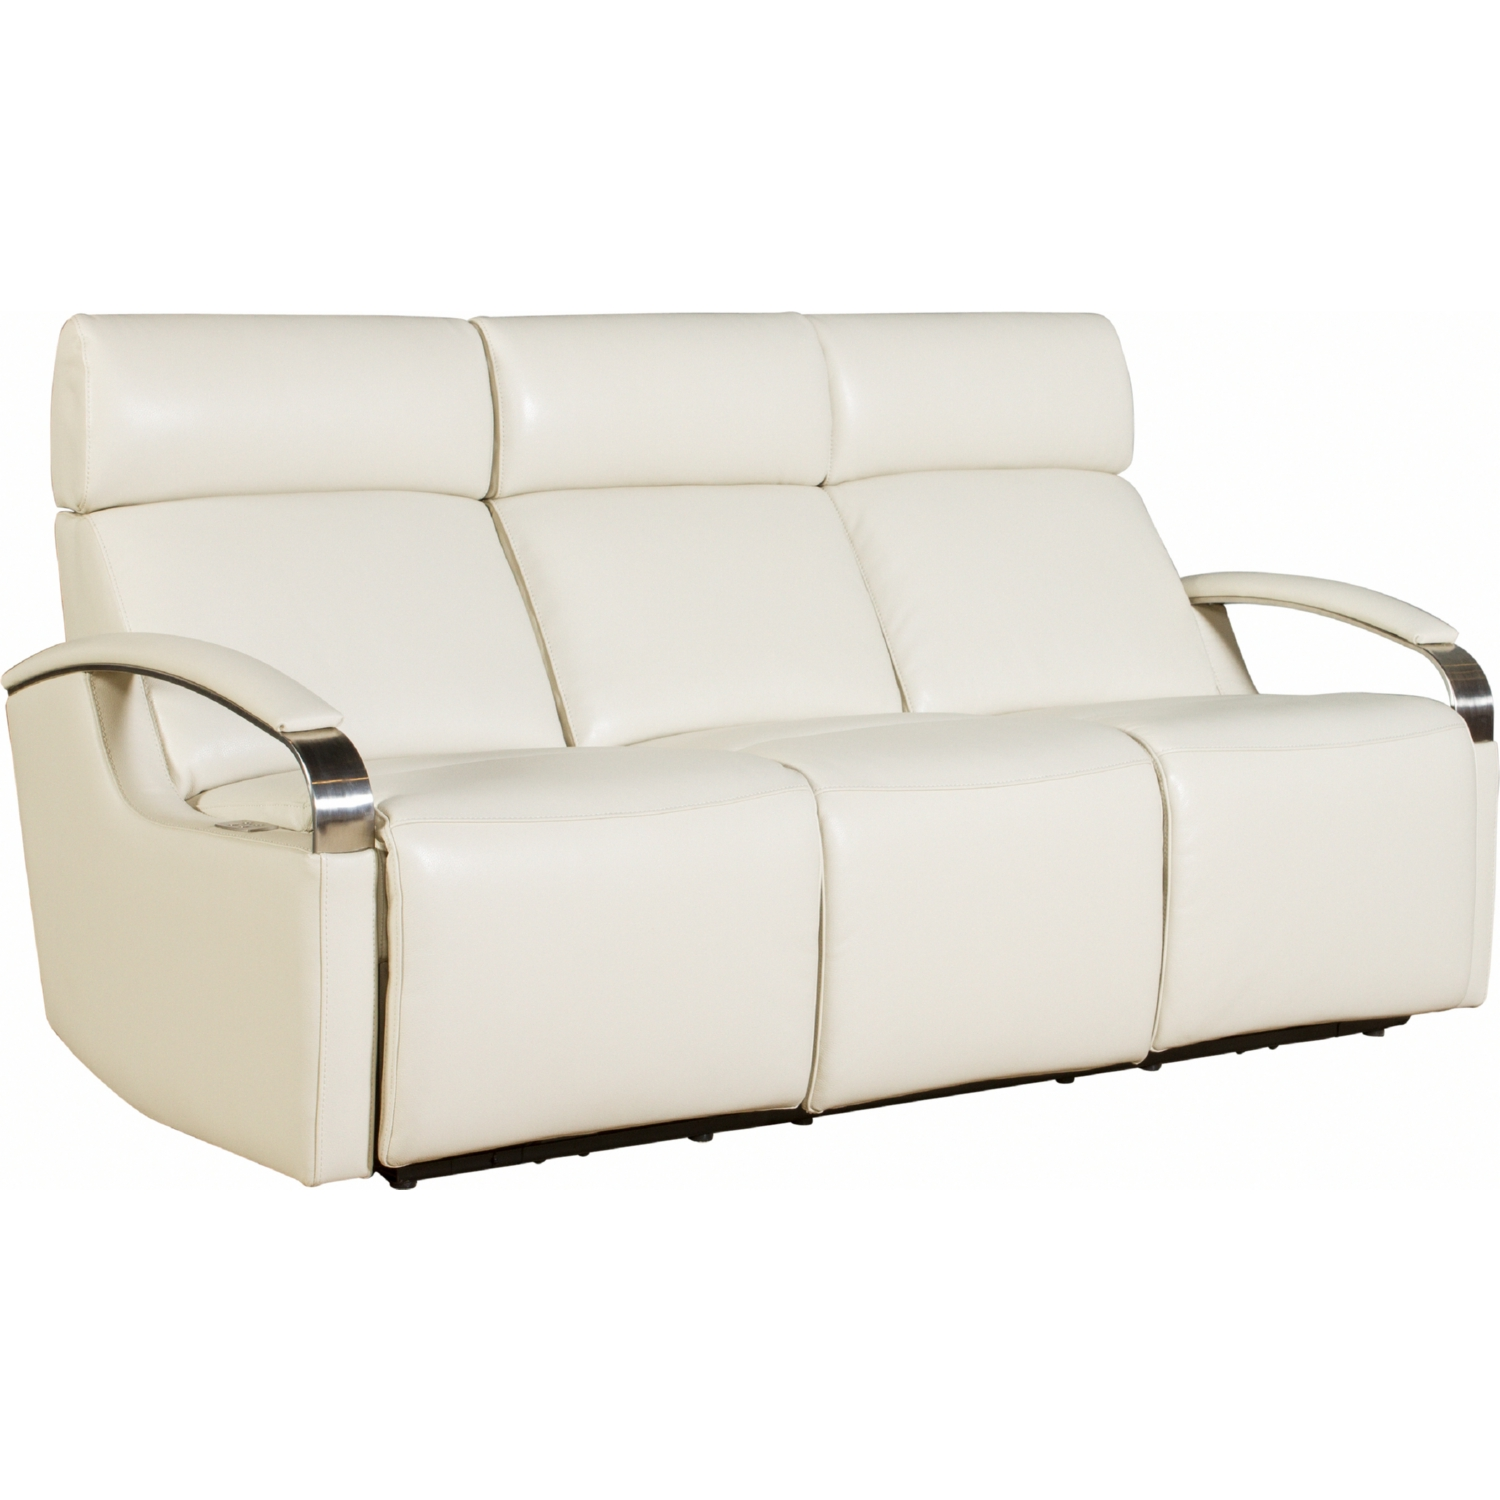 cosmo sofa set for living room with price power reclining by barcalounger  lewis